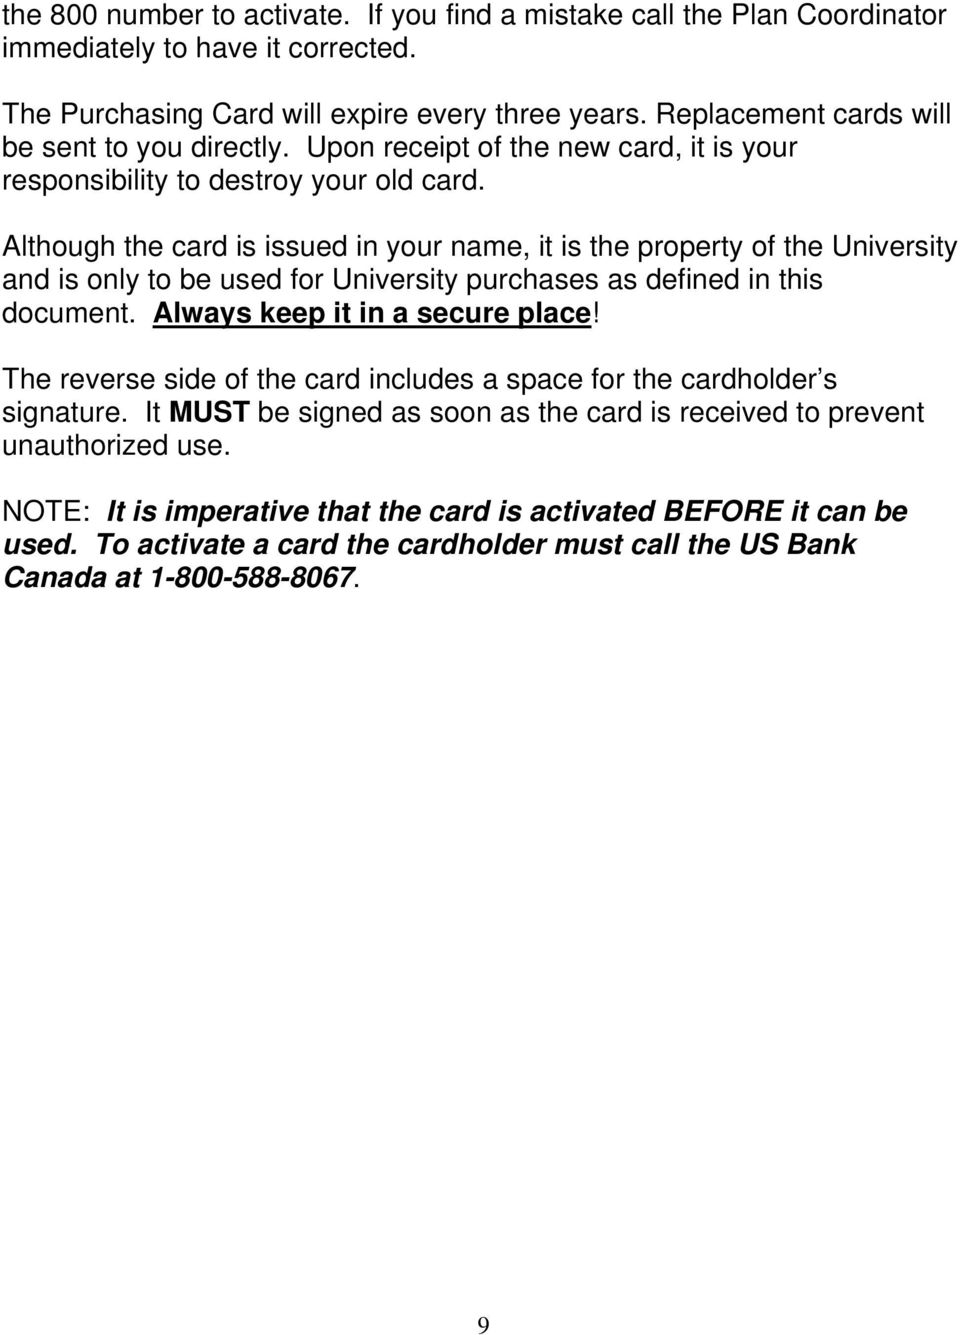 Although the card is issued in your name, it is the property of the University and is only to be used for University purchases as defined in this document. Always keep it in a secure place!